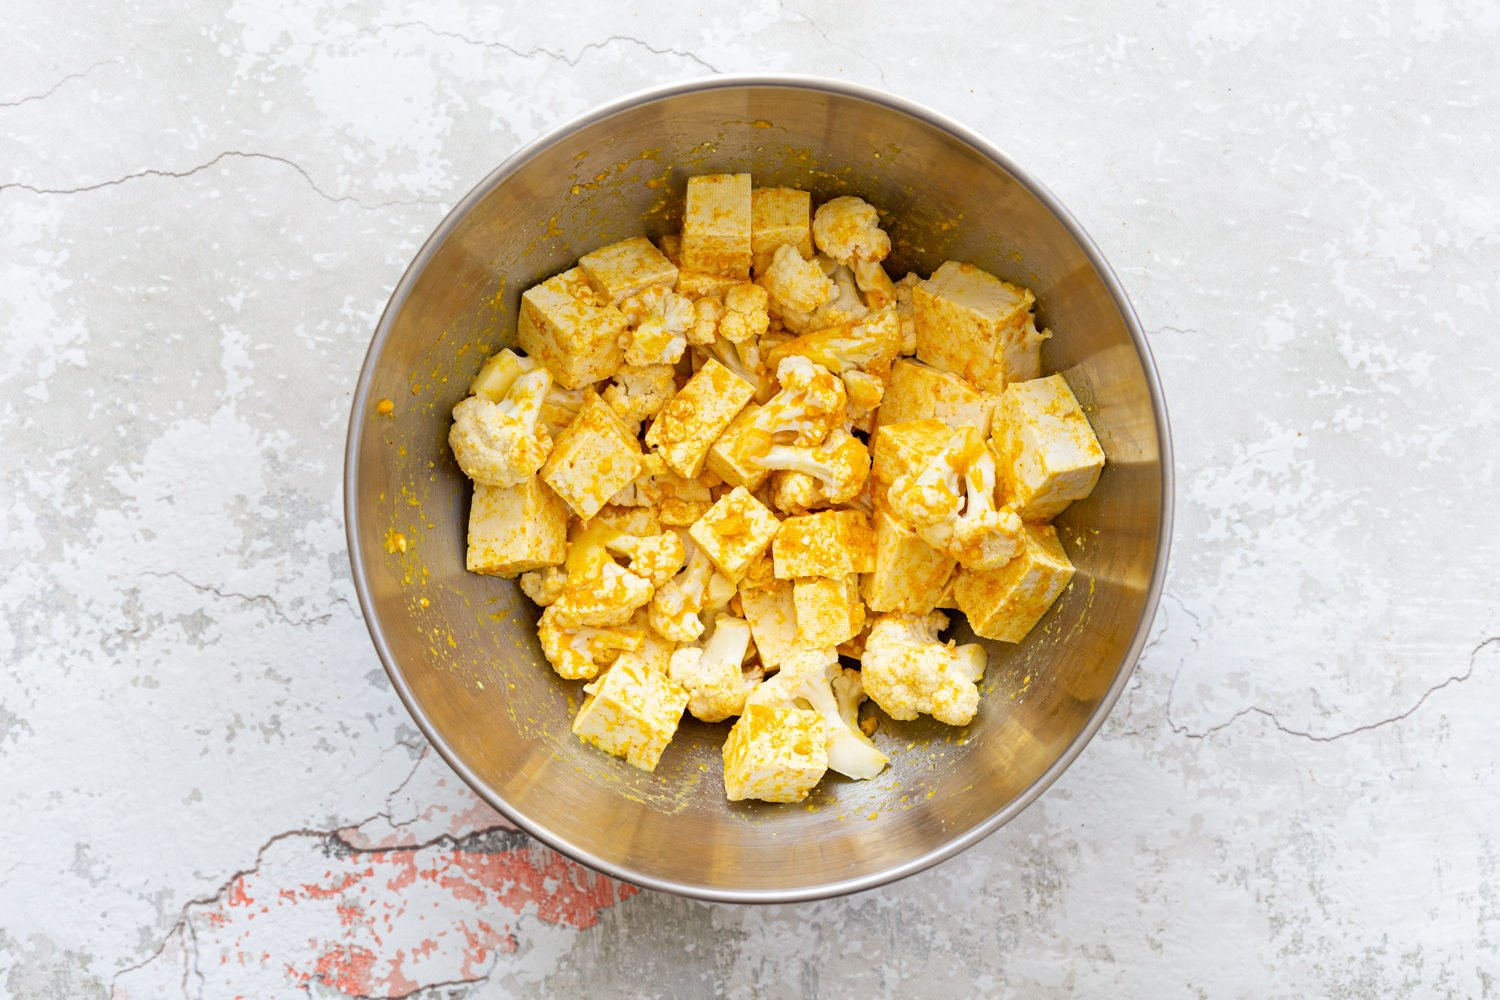 Tofu and Cauliflower in a steel bowl